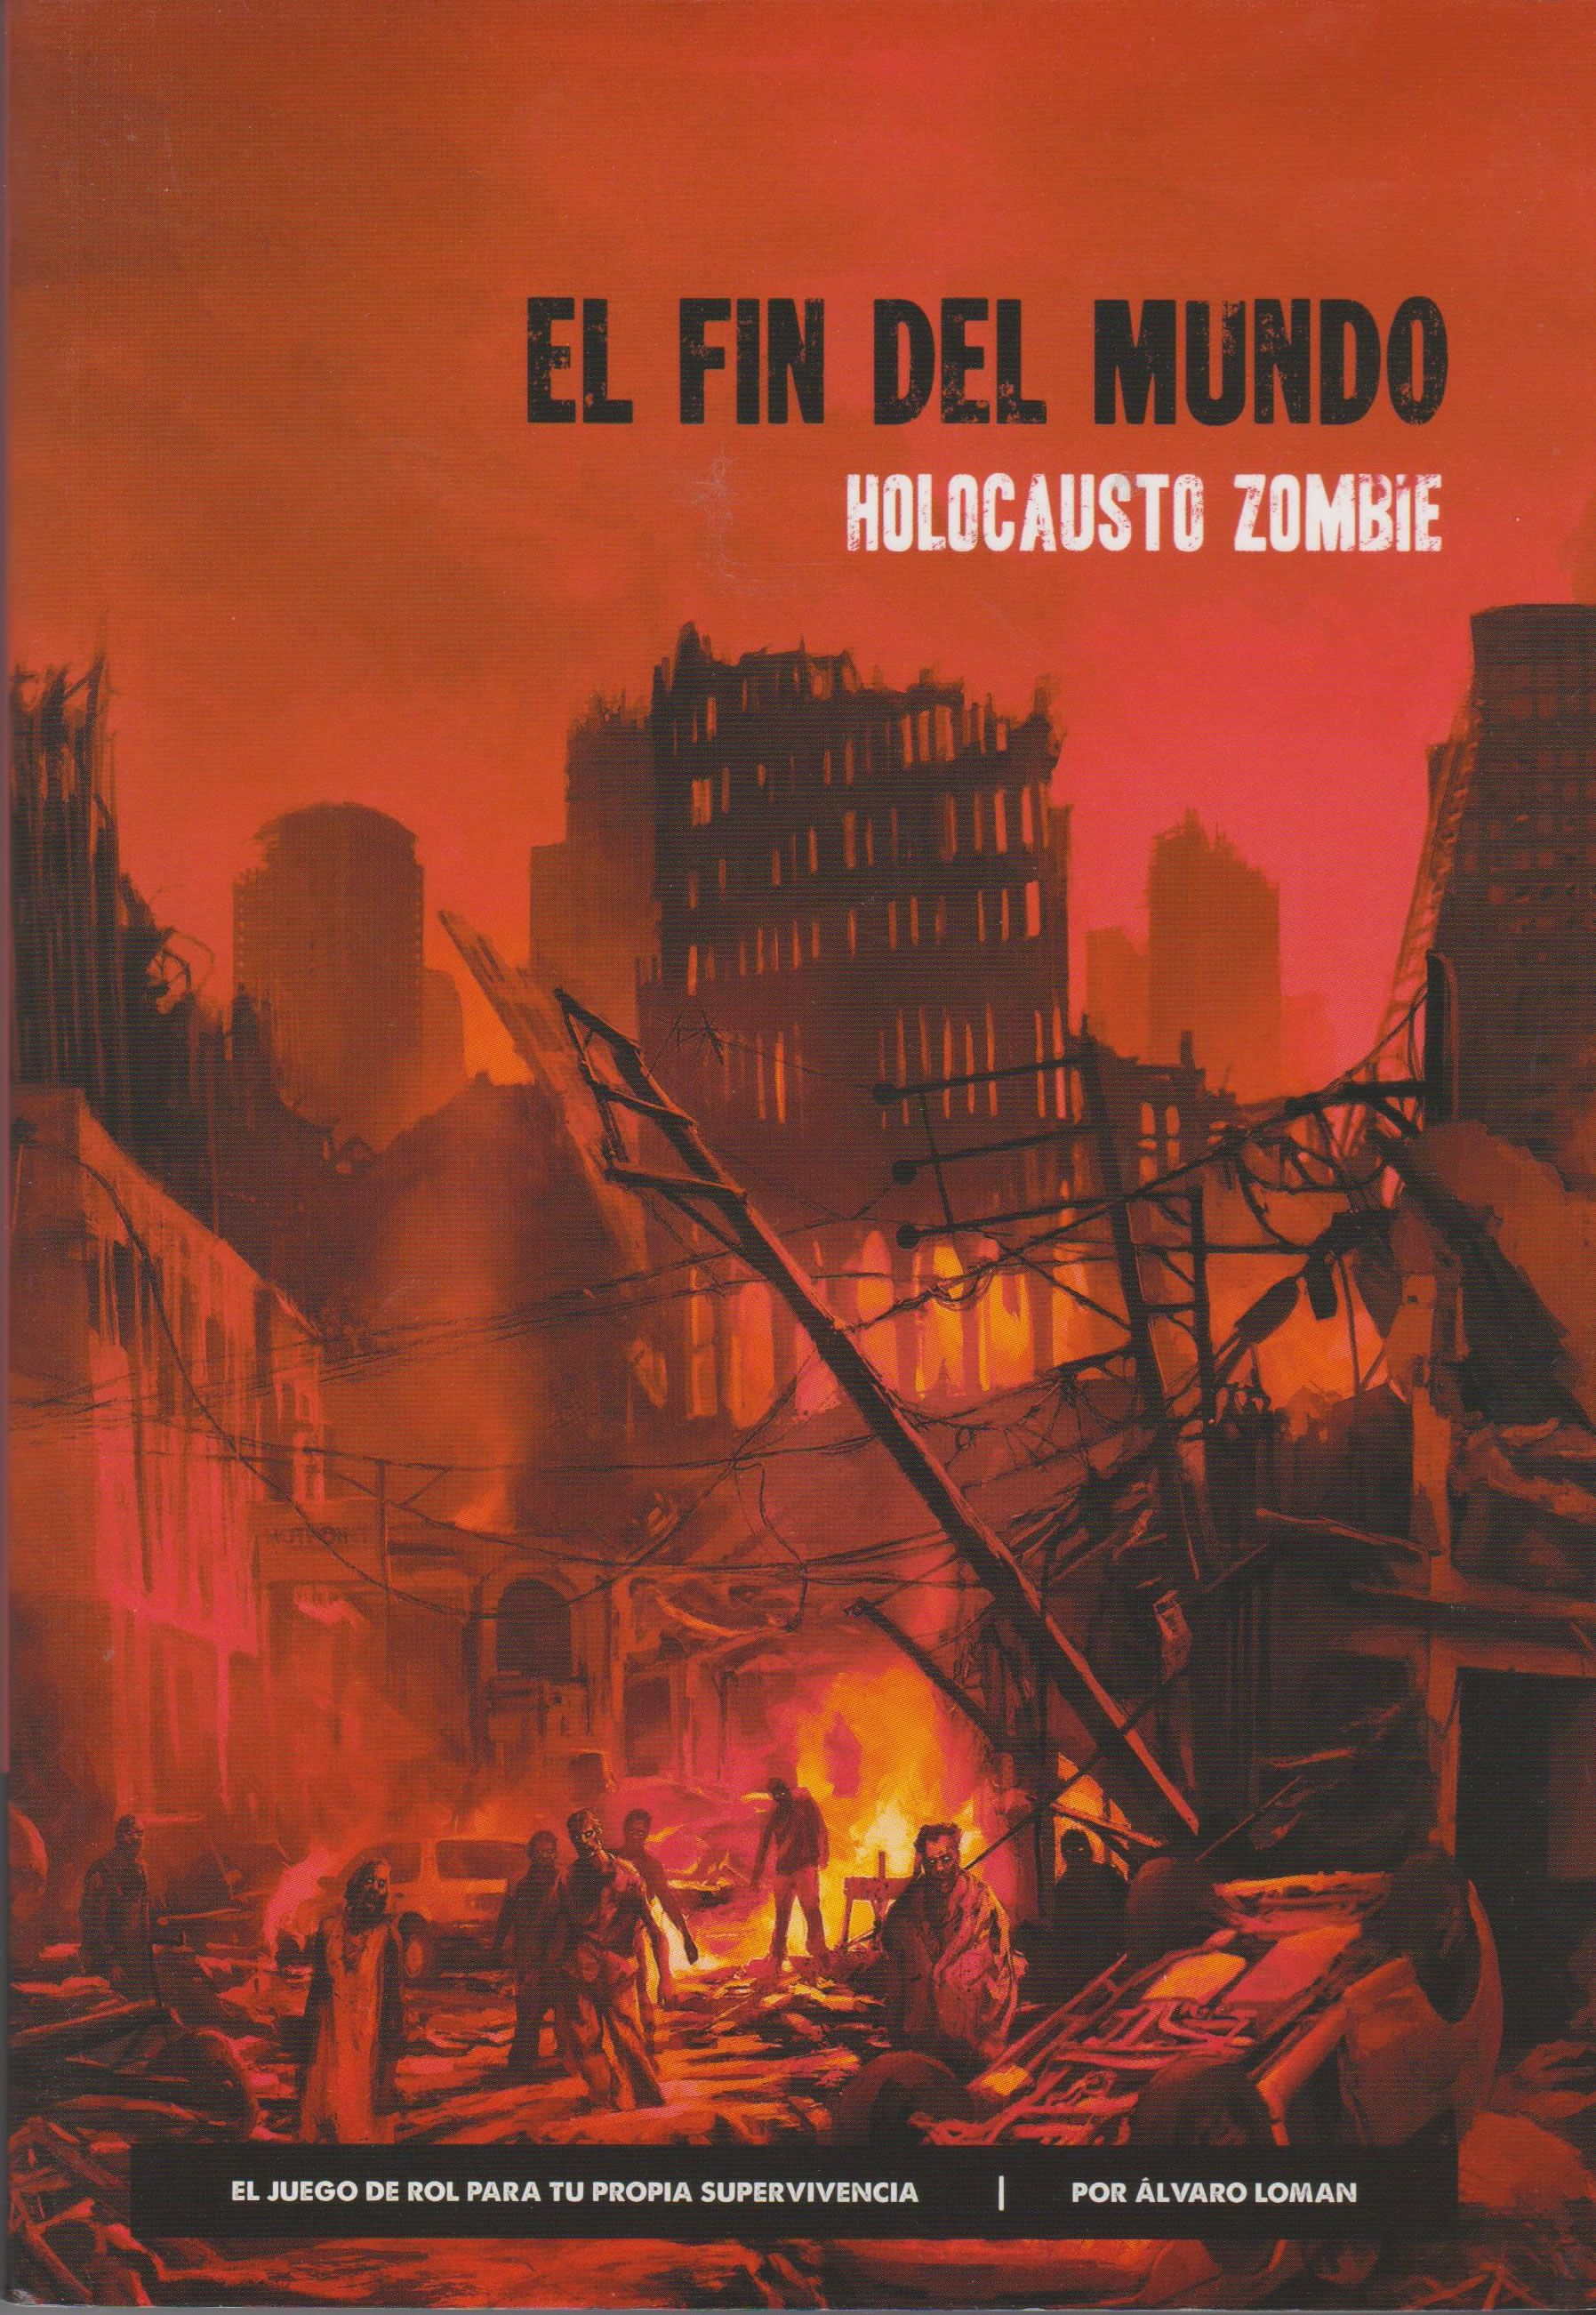 The End Of The World Zombie Apocalypse Image Boardgamegeek